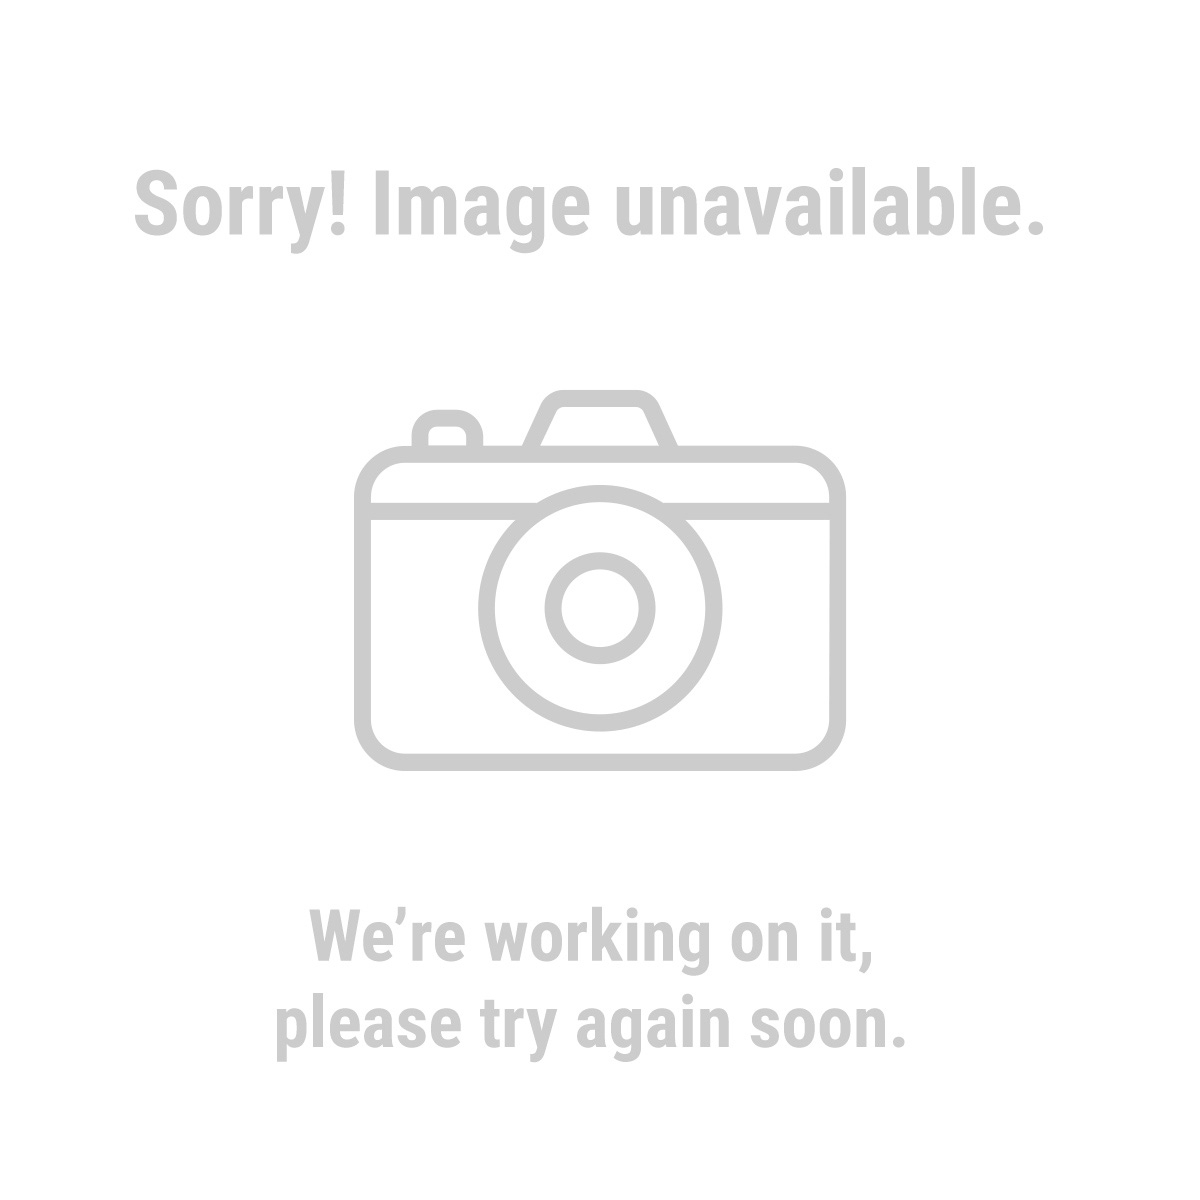 Haul-Master® 62900 700 lb. Capacity Bigfoot Hand Truck